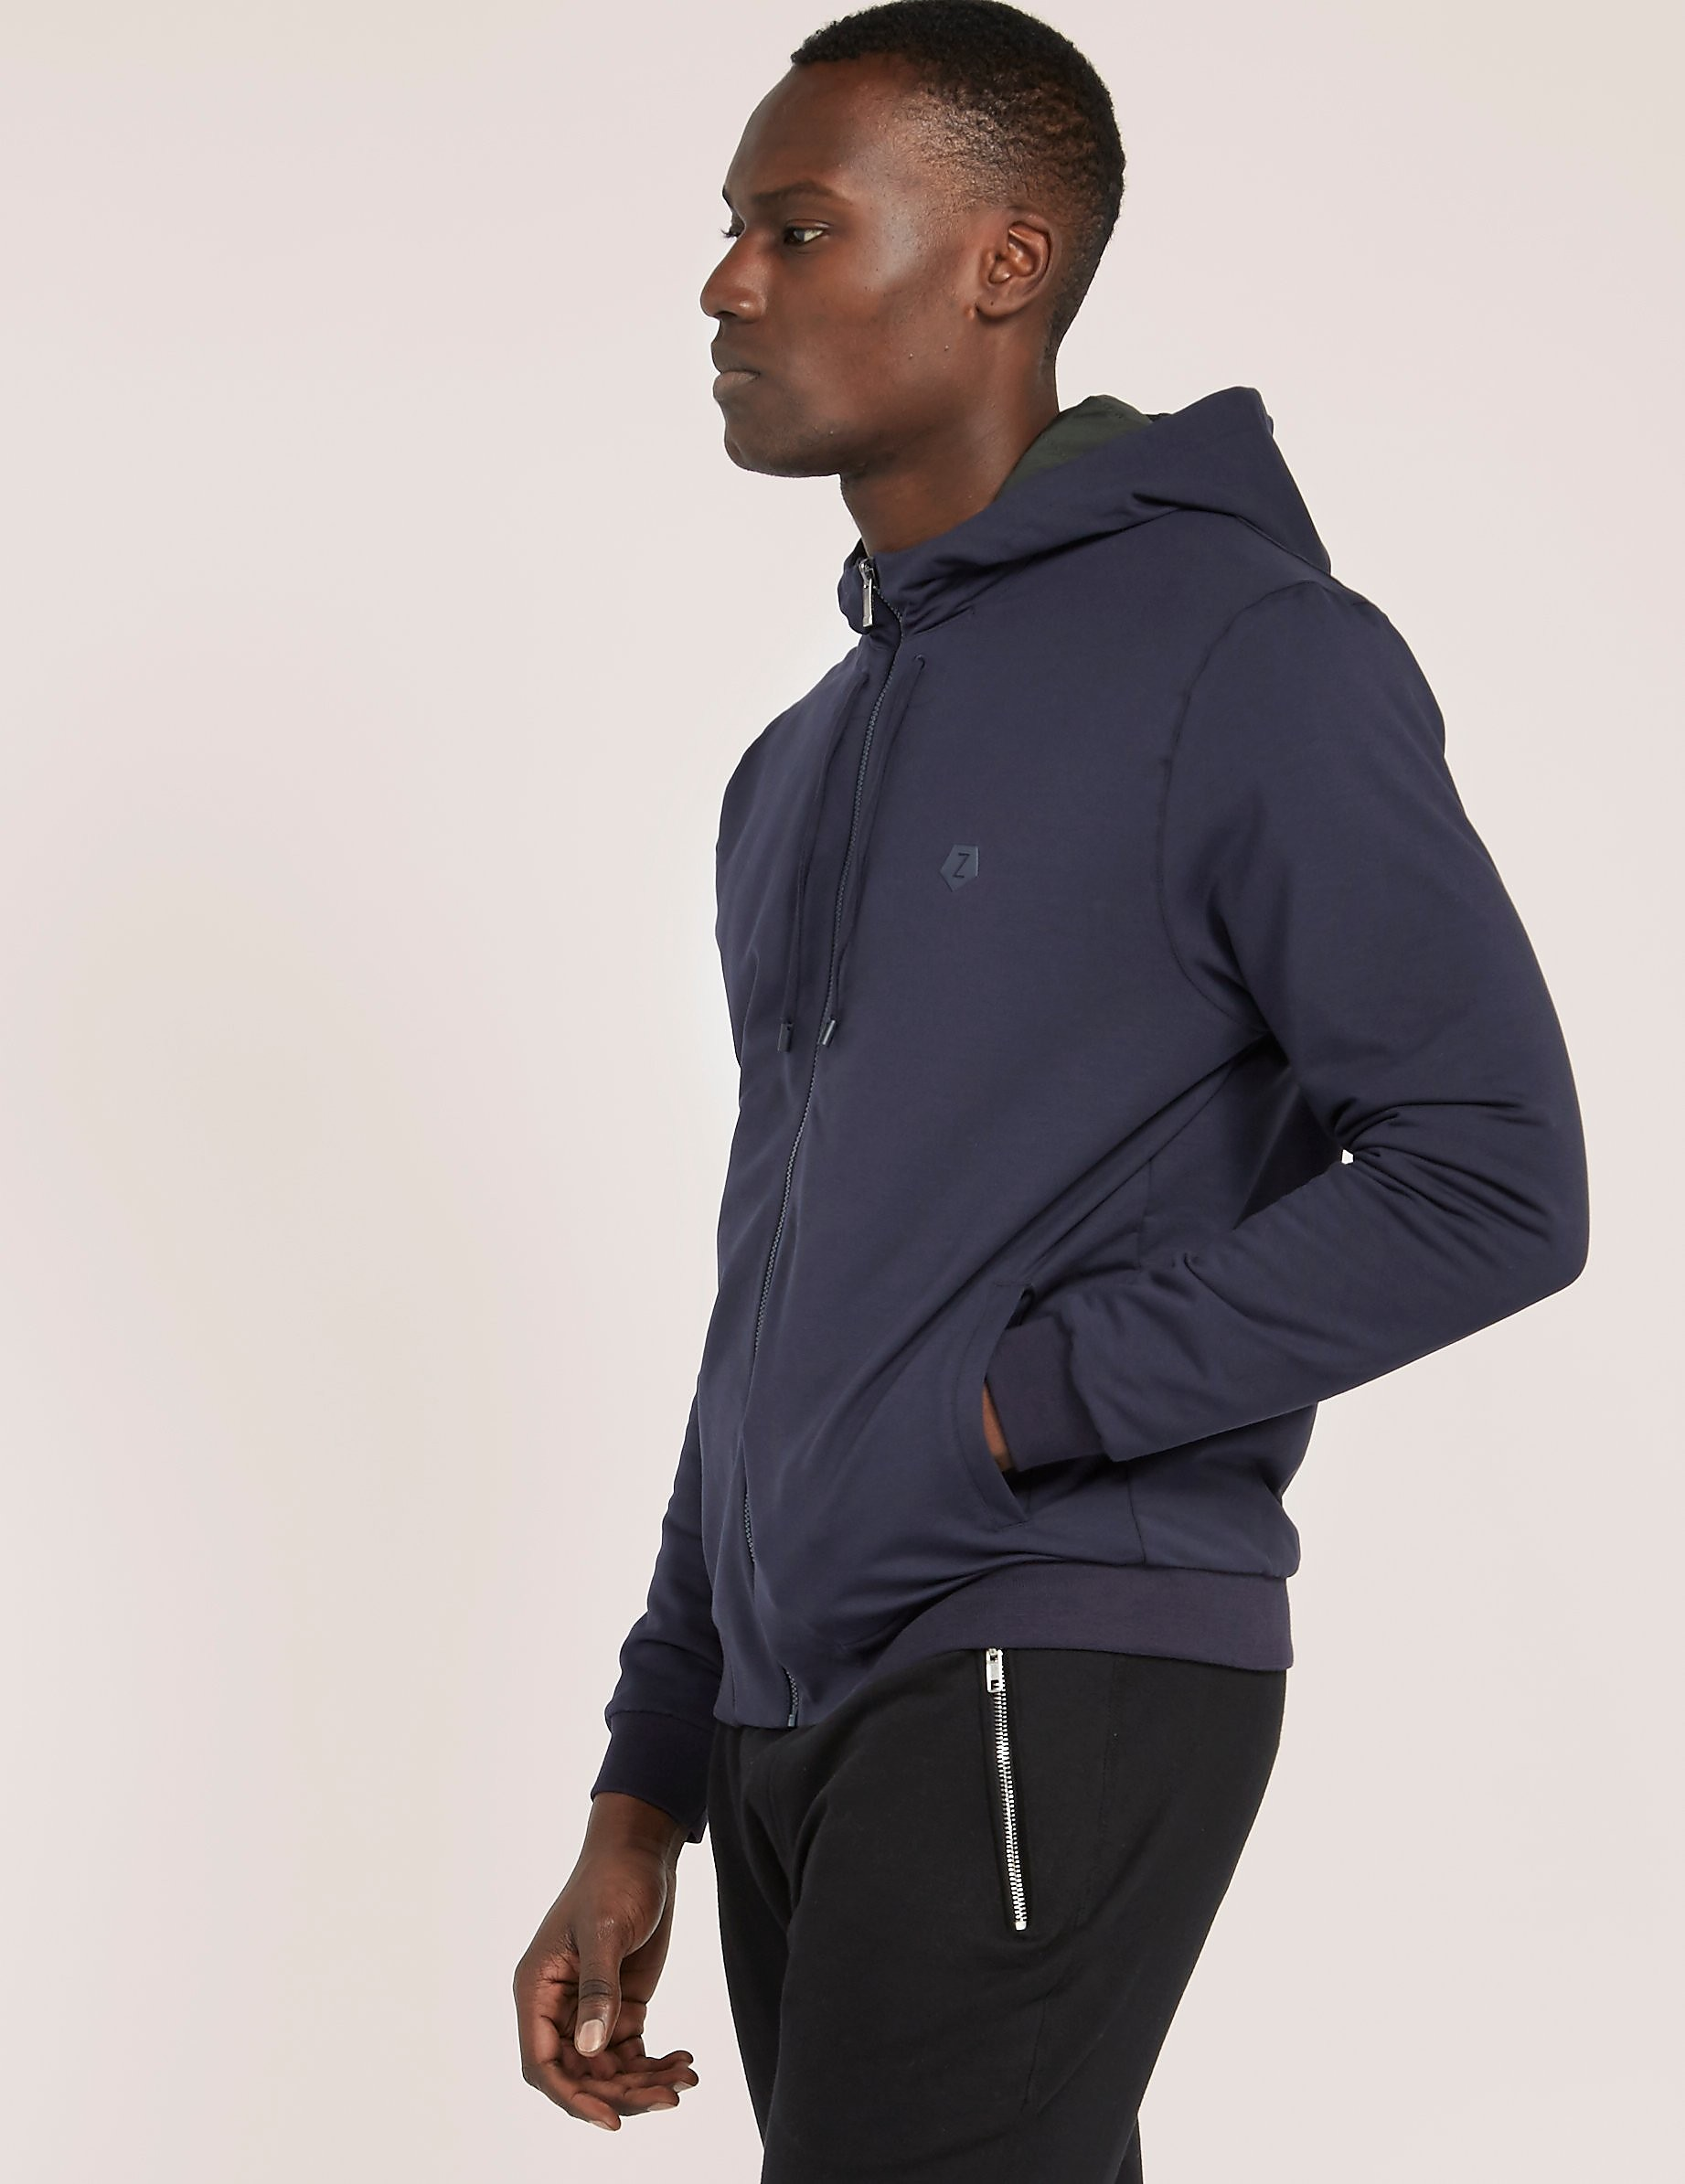 Z Zegna Hooded Track Top